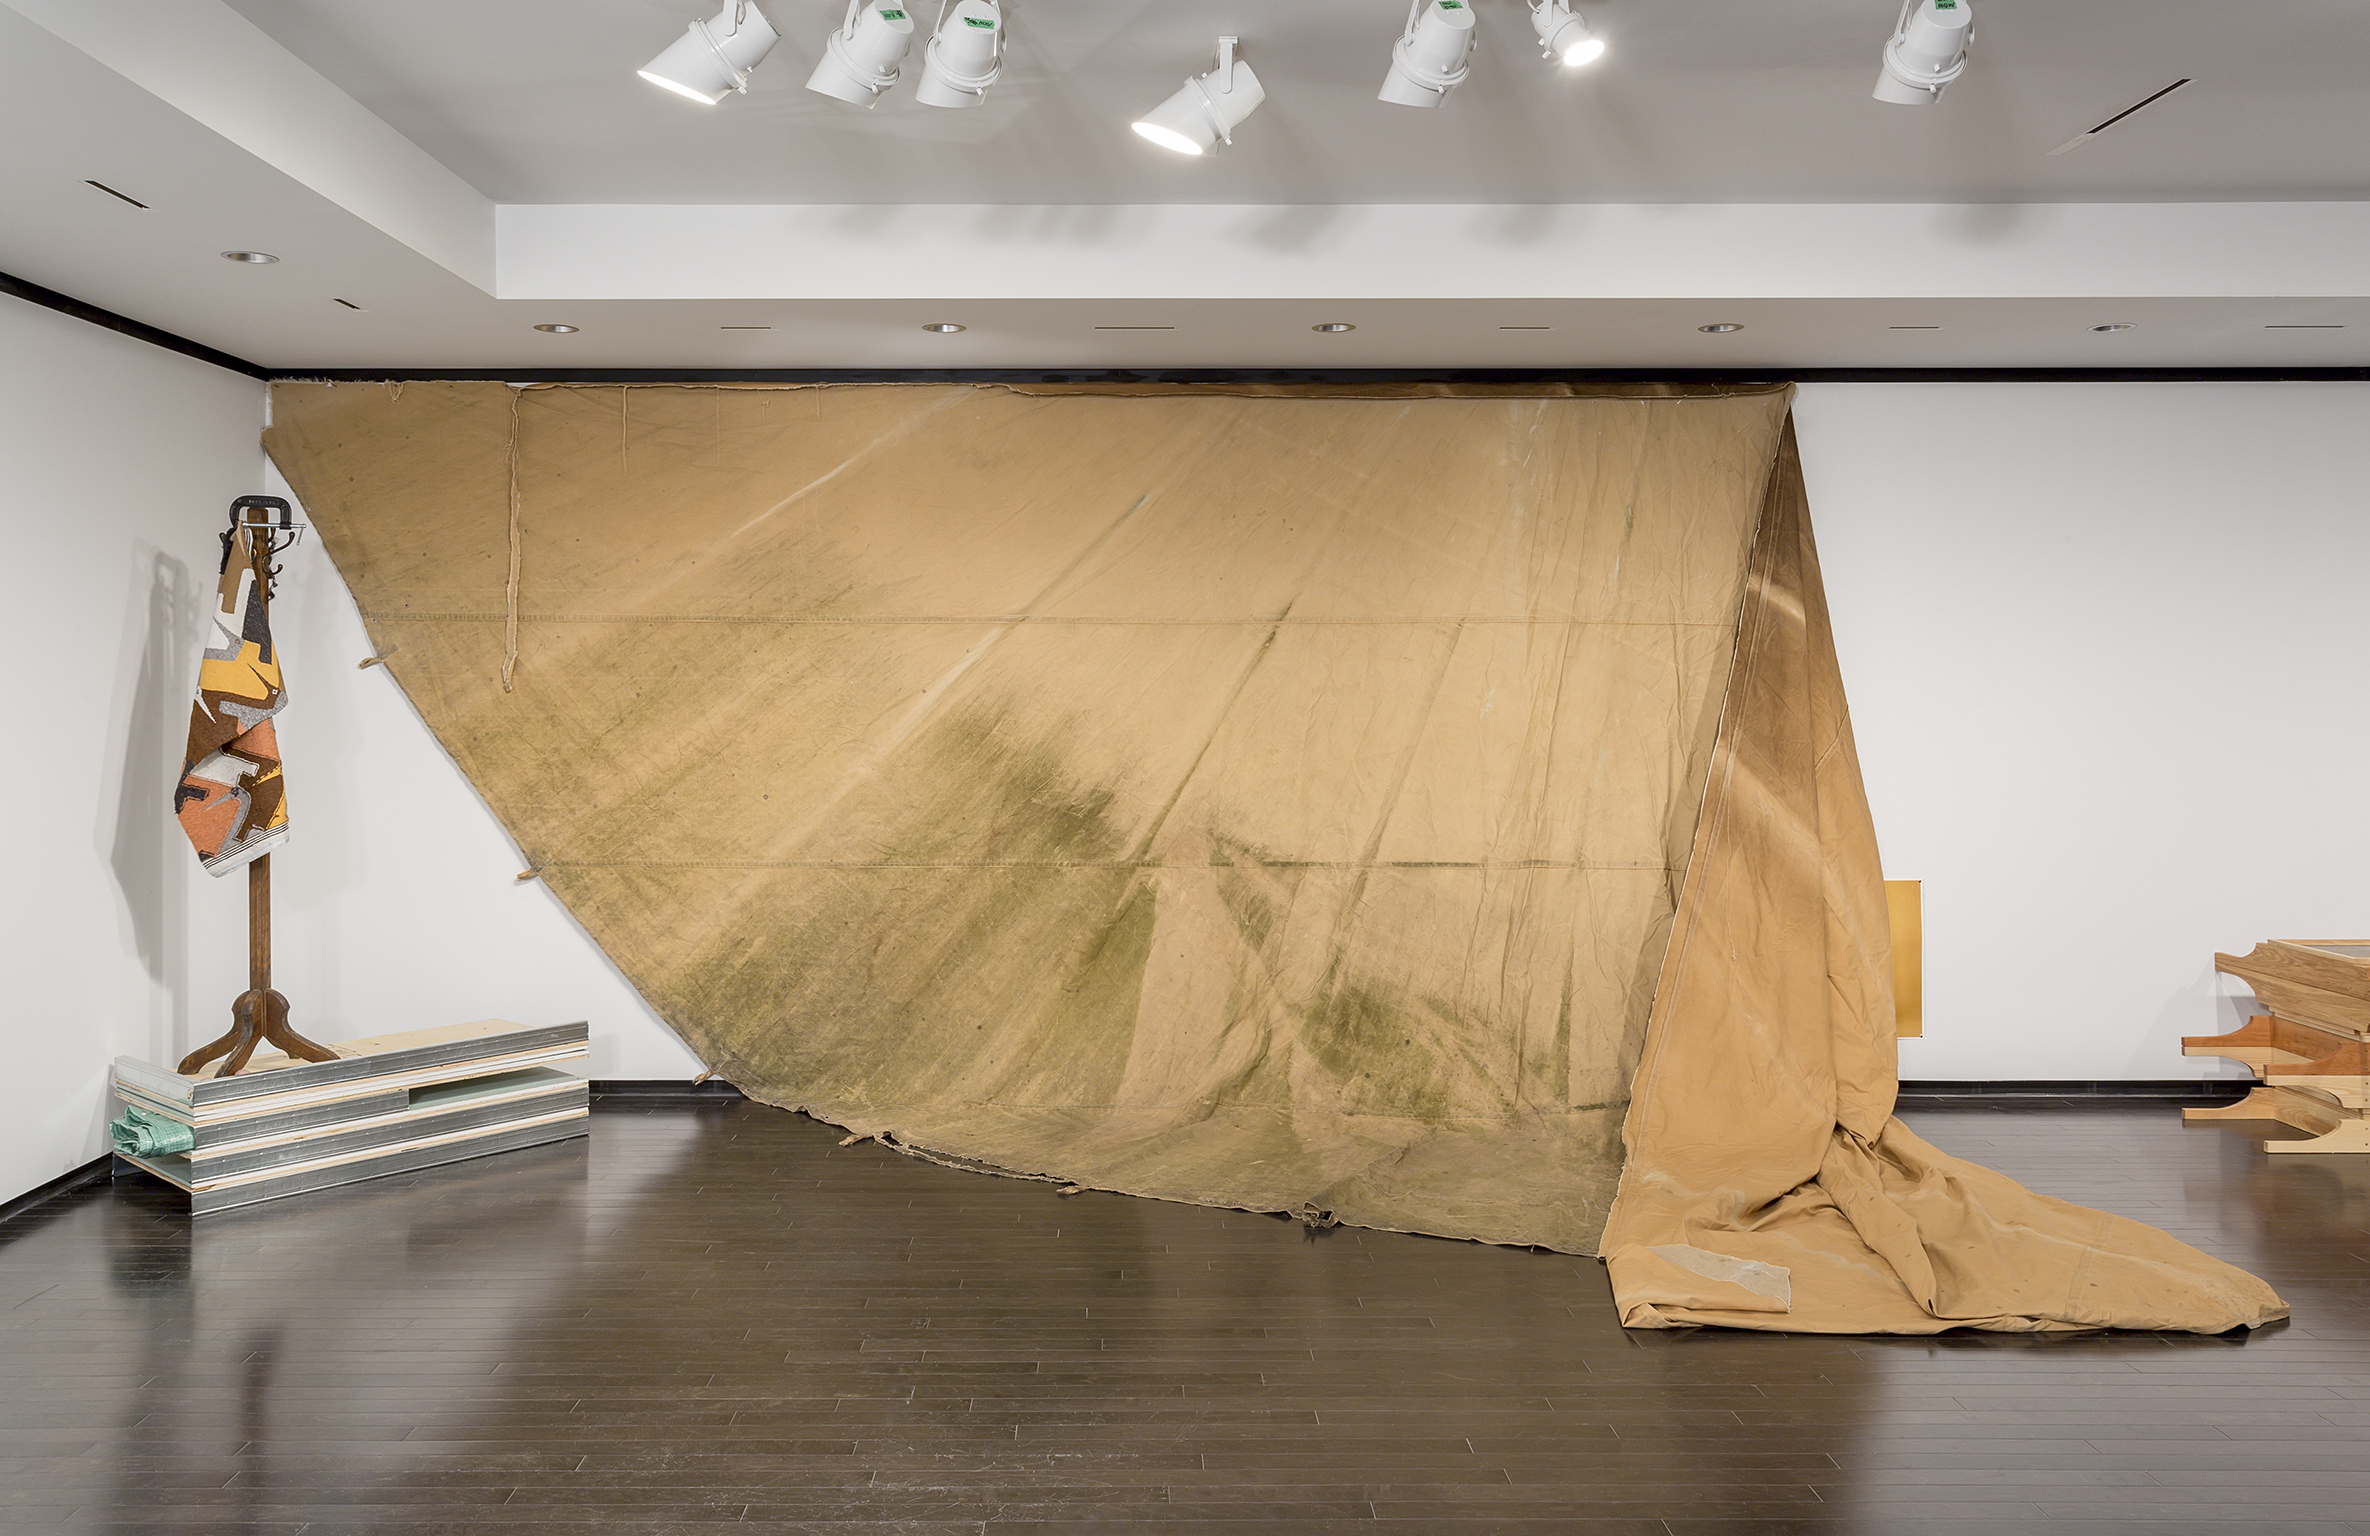 Duane Linklater, a gift from Doreen, 2016, teepee canvas, nails, dimensions variable. Installation view, A Parallel Excavation, Art Gallery of Alberta, Edmonton, Canada, 2016 by